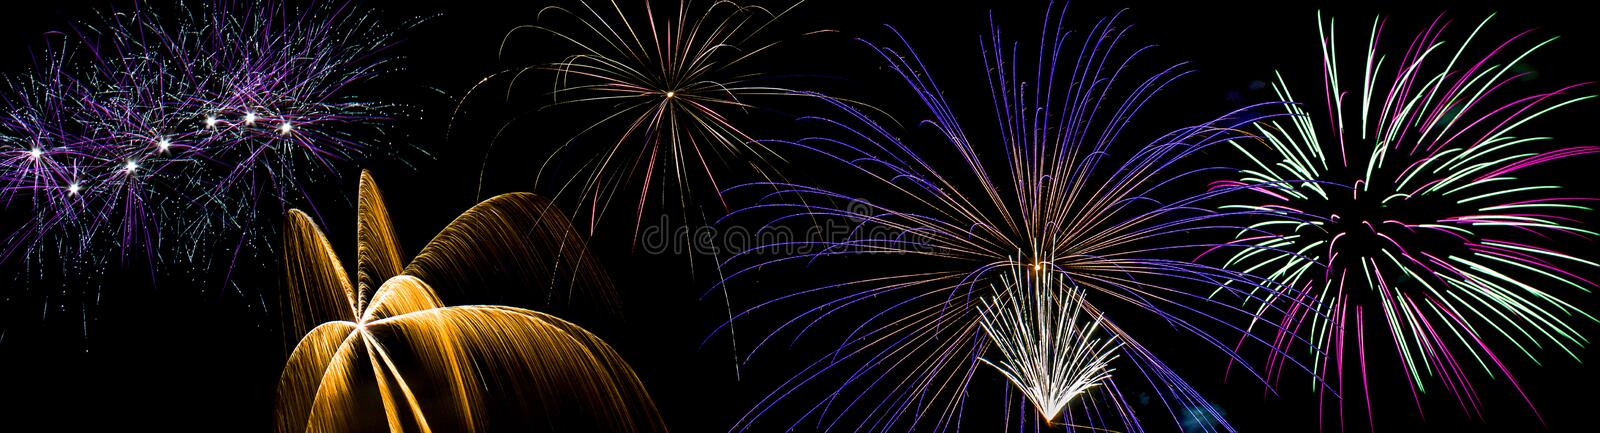 Fireworks Display. A July fireworks display panorama royalty free stock photography